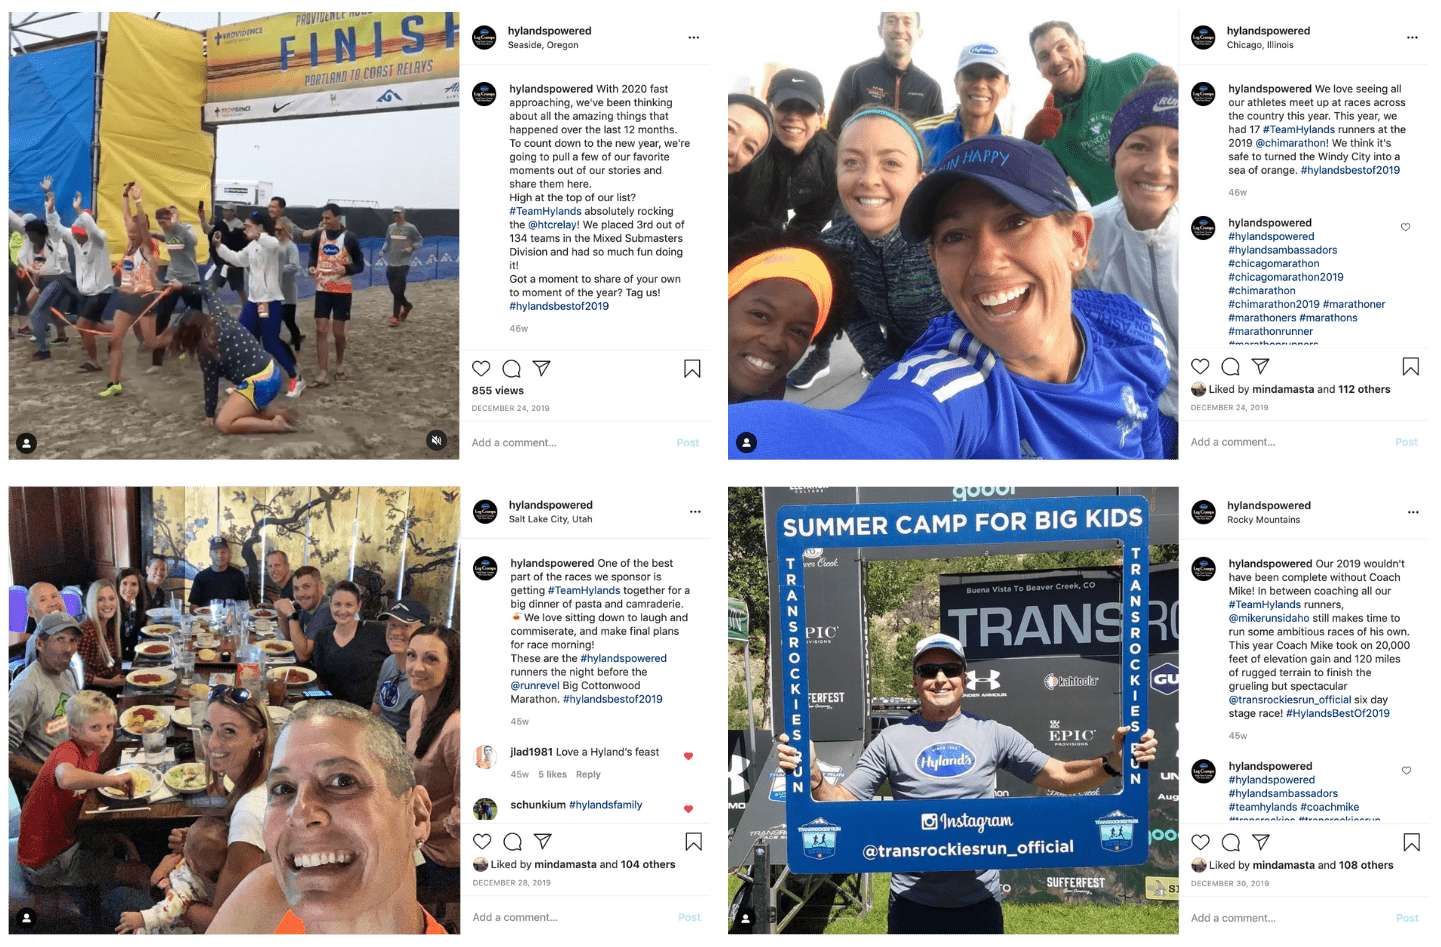 A collage with 4 Instagram posts from Hyland's that highlight 4 of their top moments from 2019.